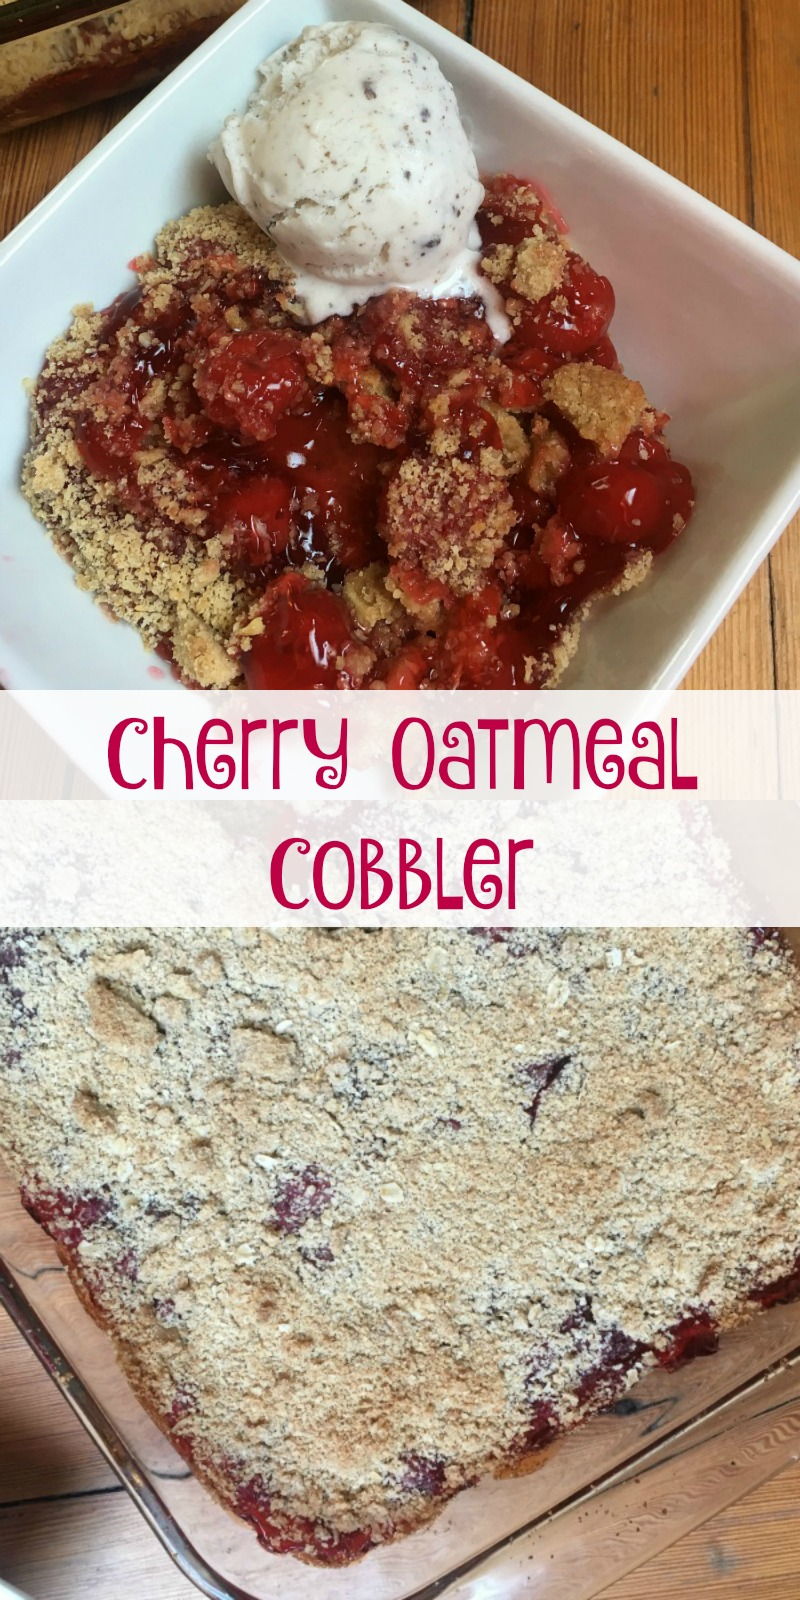 Cherry Oatmeal Cobbler is the perfect sweet and tart treat!